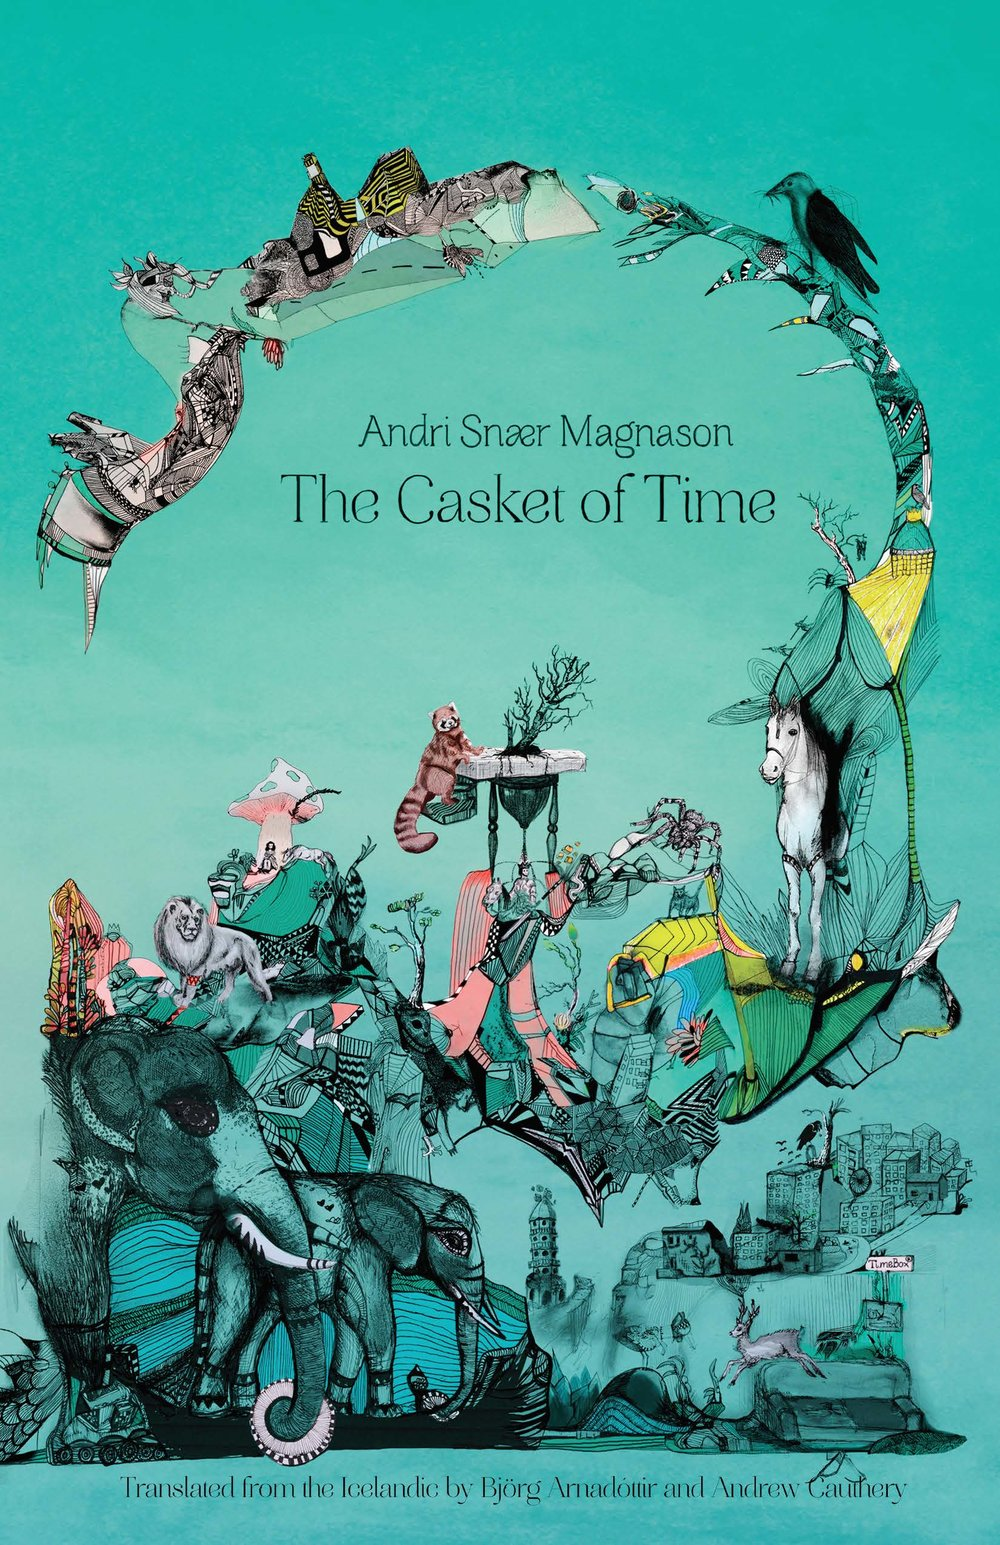 Cover for The Casket of Time by Andri Snær Magnason featuring animals and human landscapes connected by spider webbing